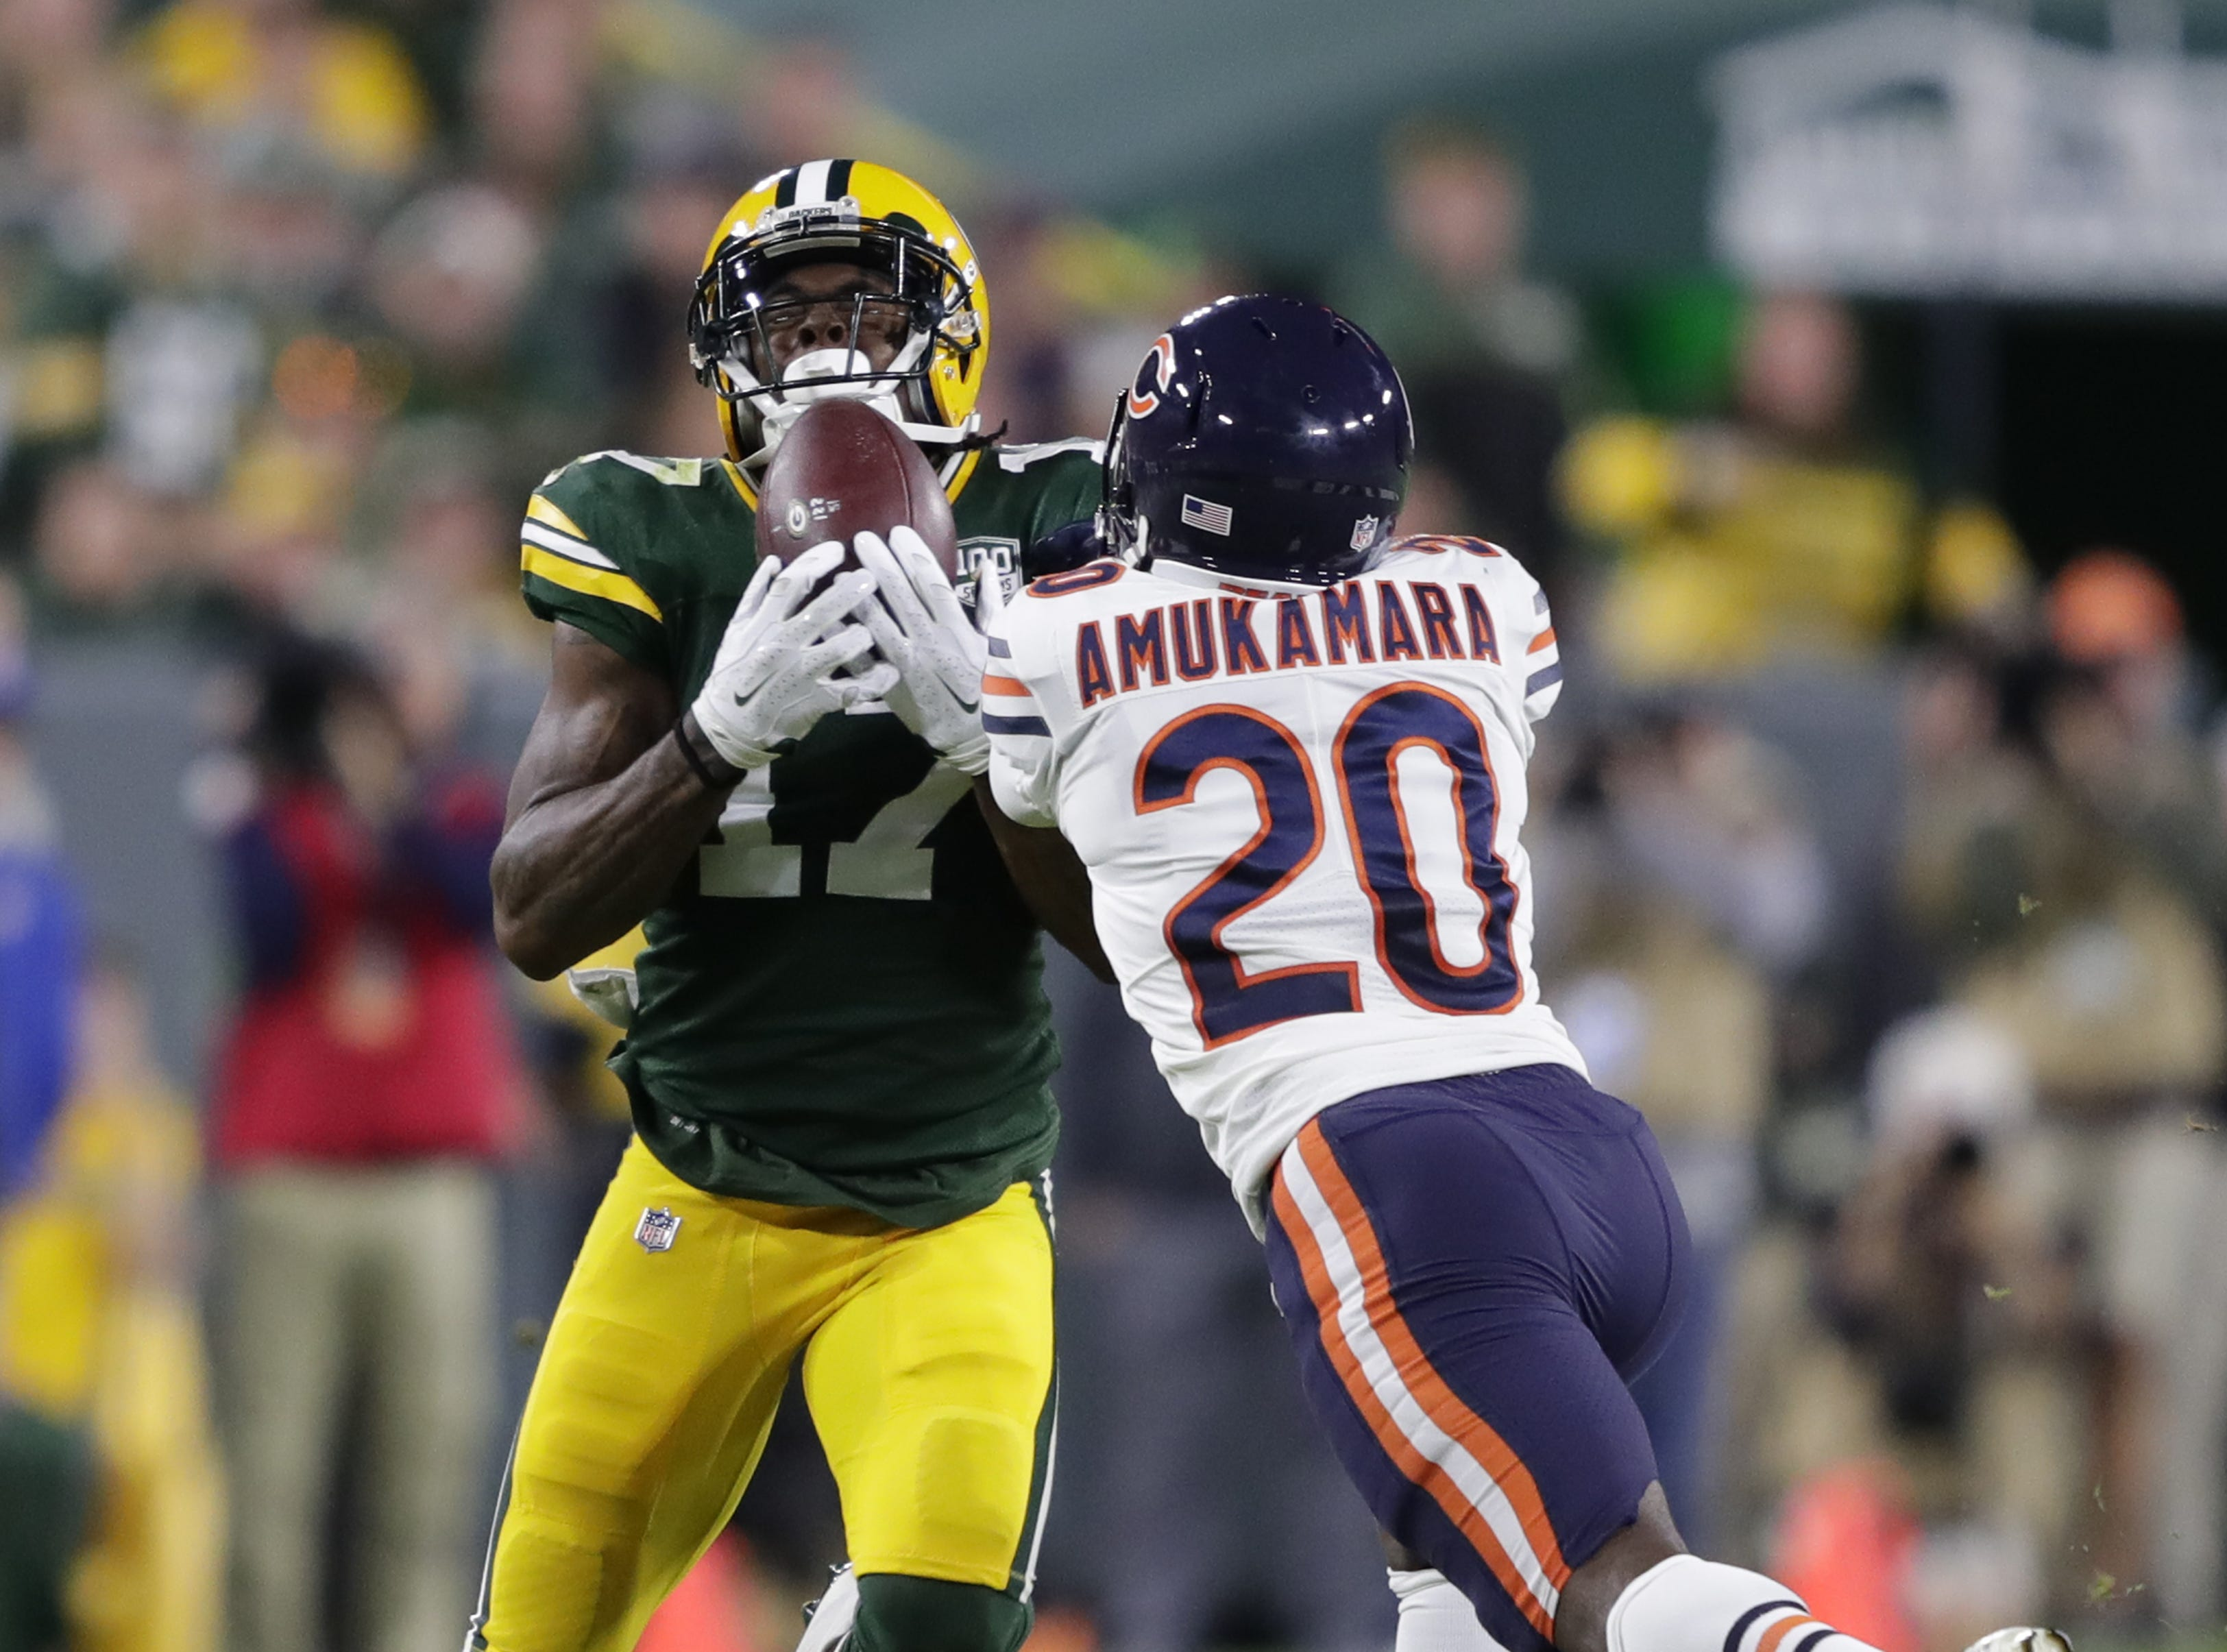 Green Bay Packers wide receiver Davante Adams (17) hauls in a long reception against Chicago Bears defensive back Prince Amukamara in the fourth quarter Sunday, Sept. 9, 2018, at Lambeau Field in Green Bay, Wis.